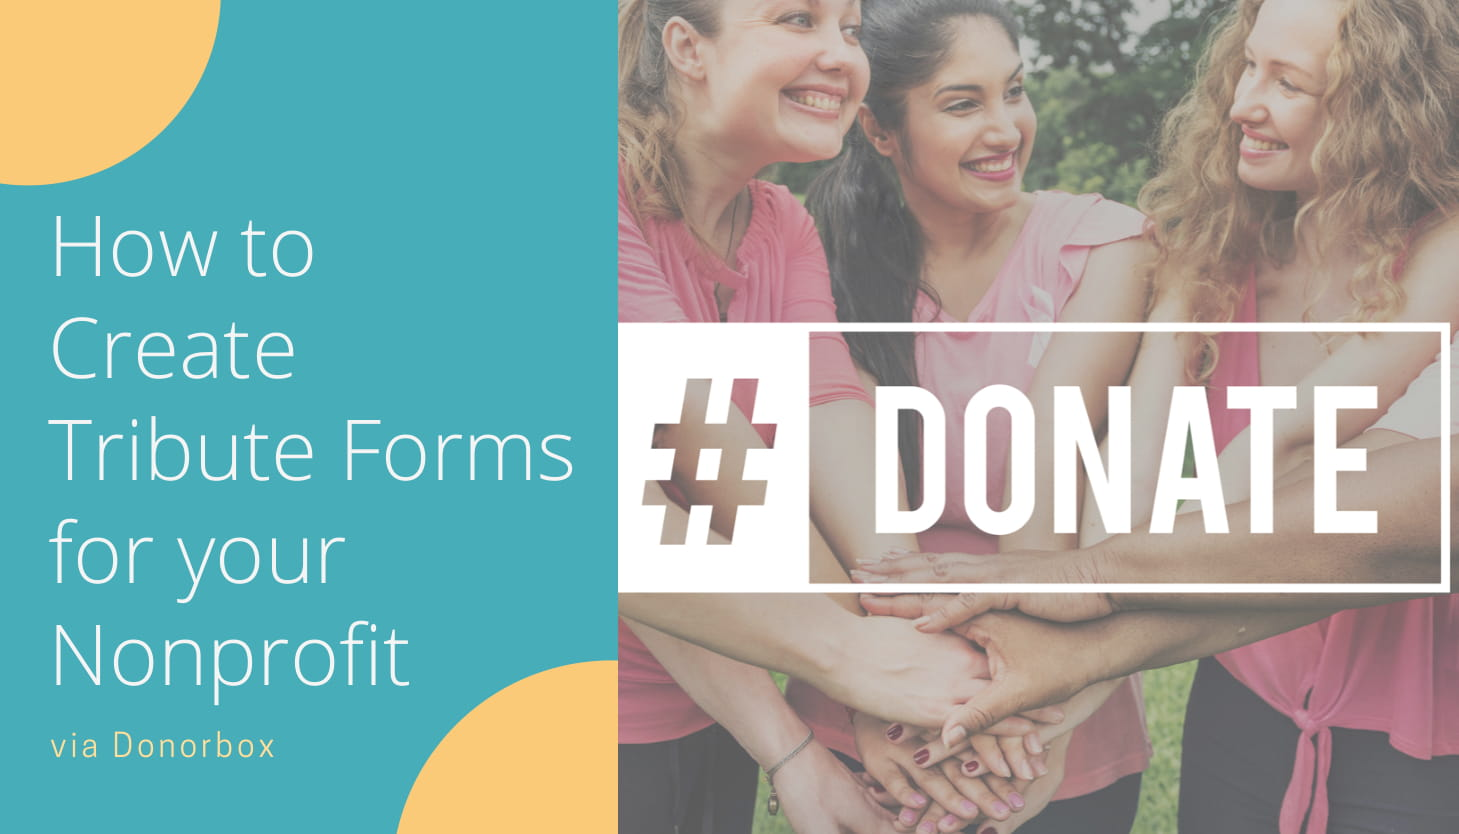 How to Create Tribute Forms for Your Nonprofit via Donorbox